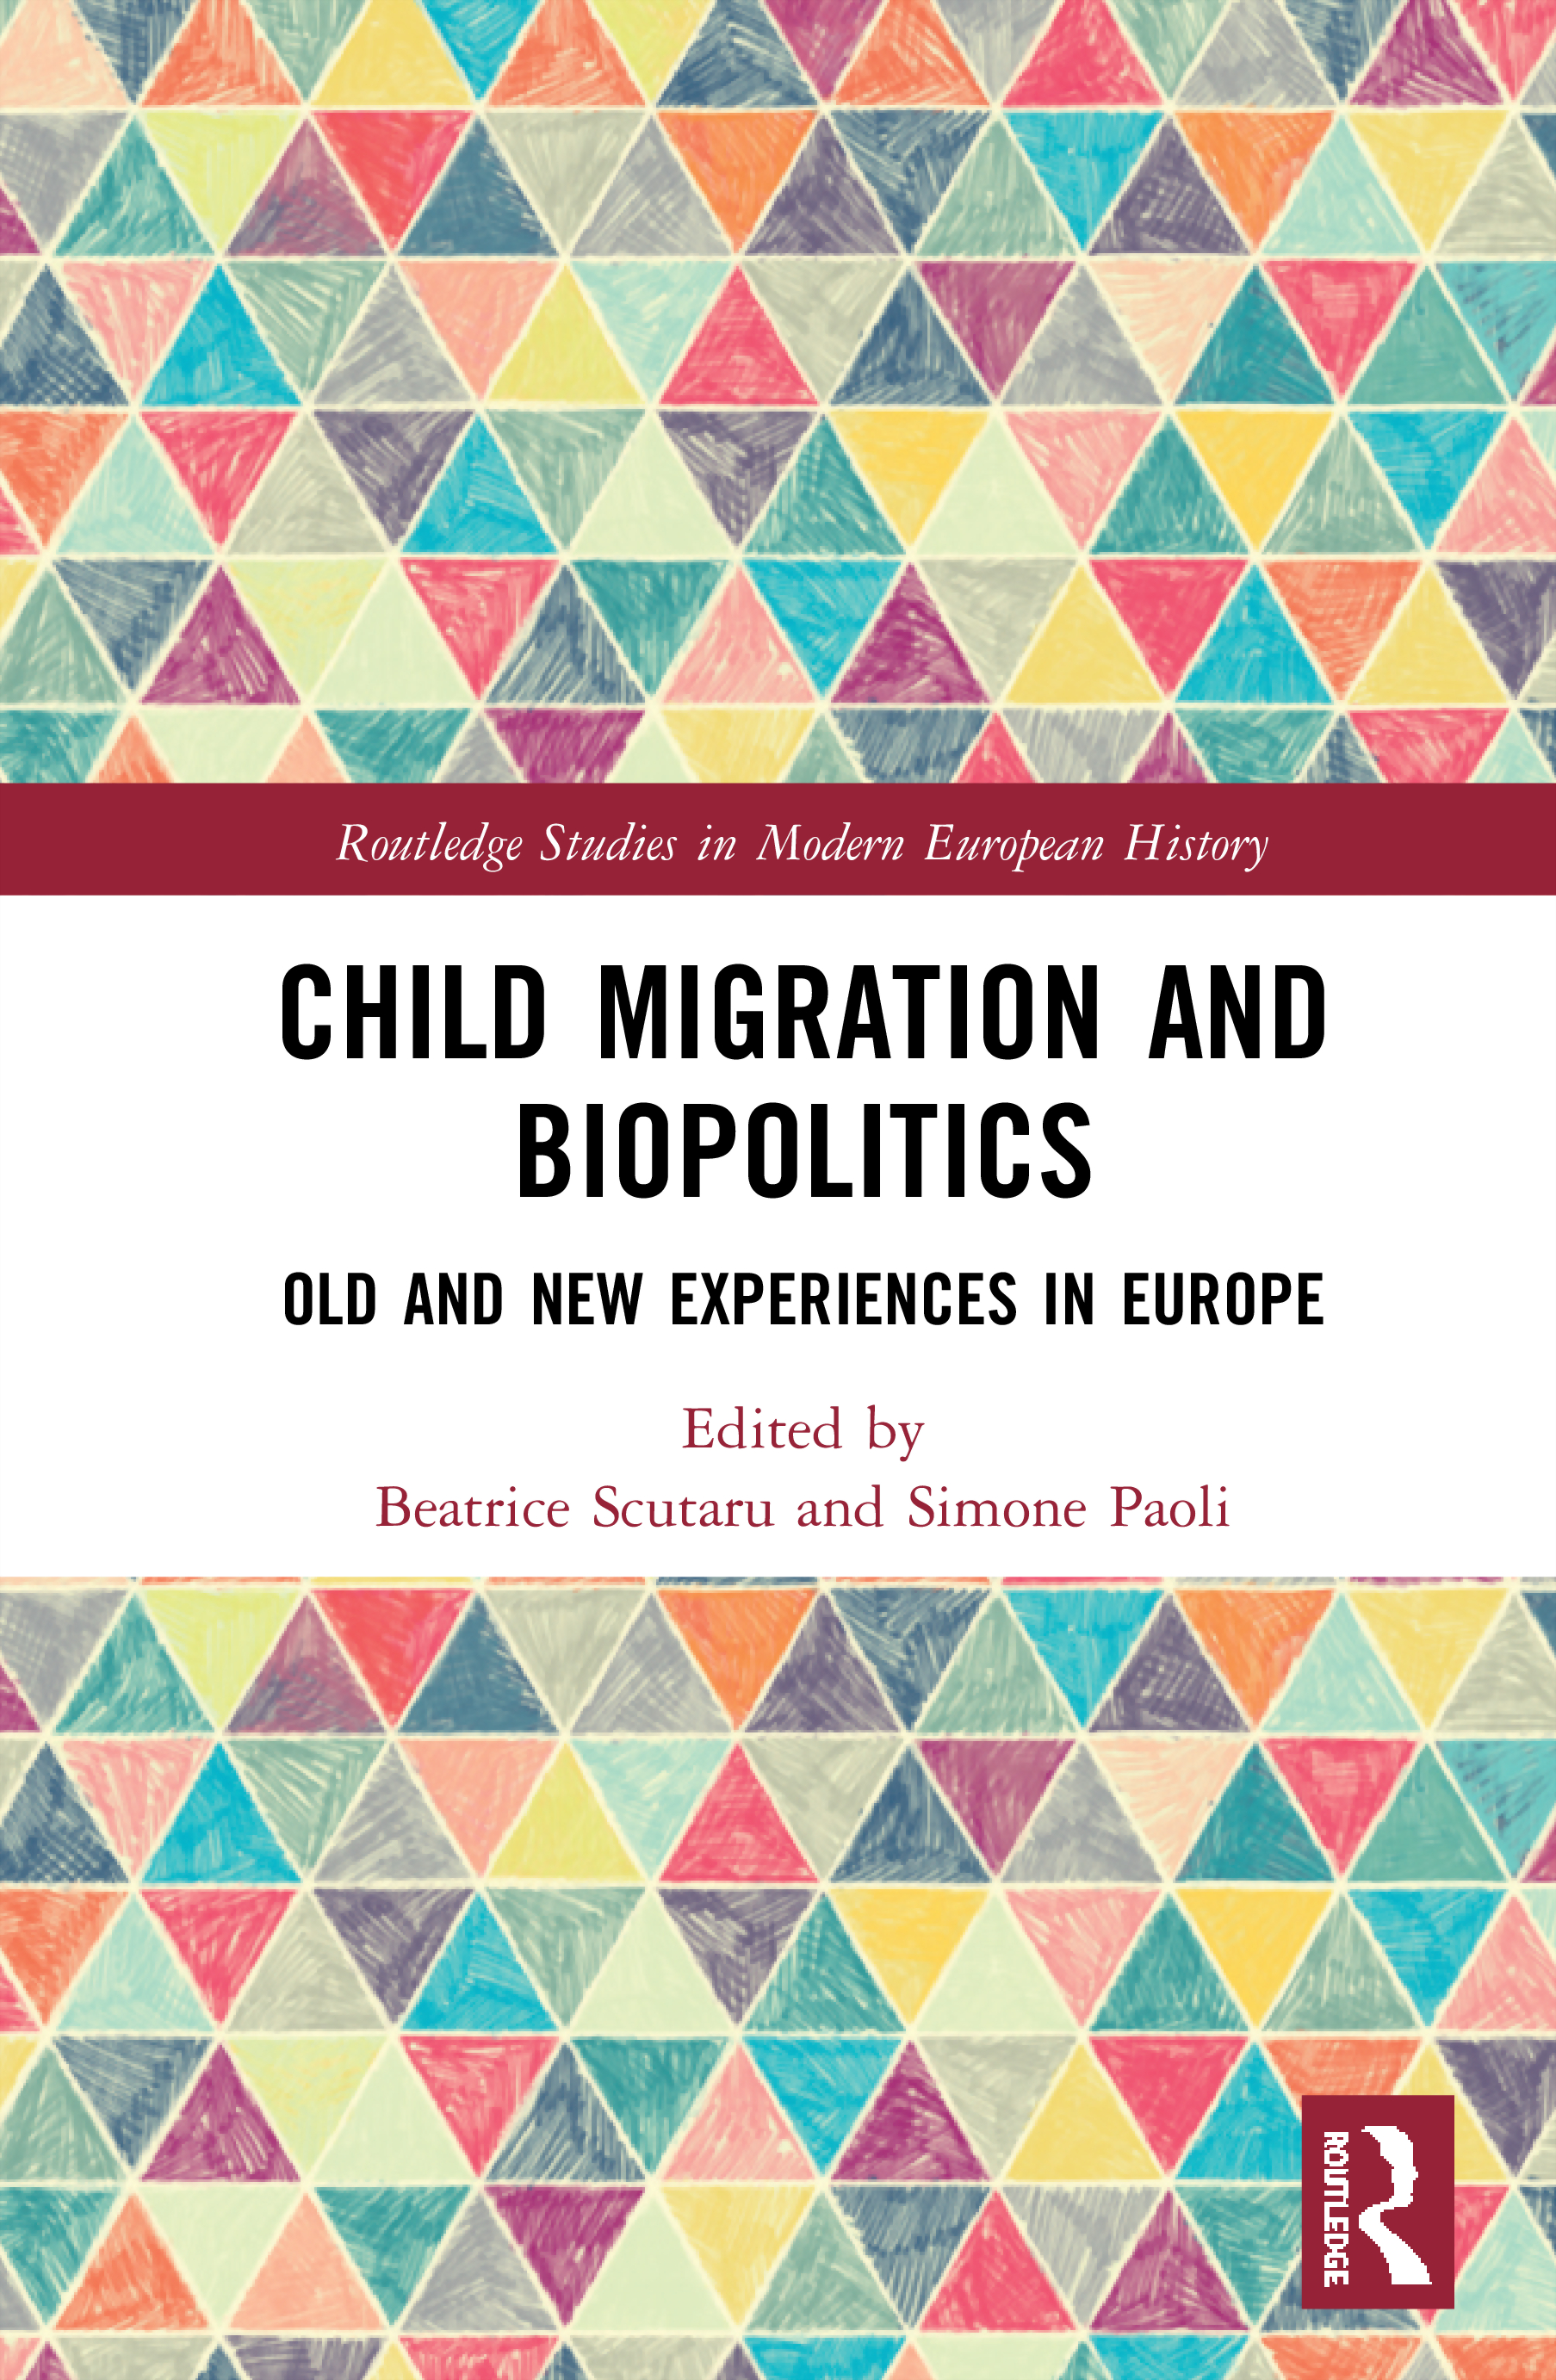 Child Migration and Biopolitics: Old and New Experiences in Europe, 1st Edition (Hardback) book cover